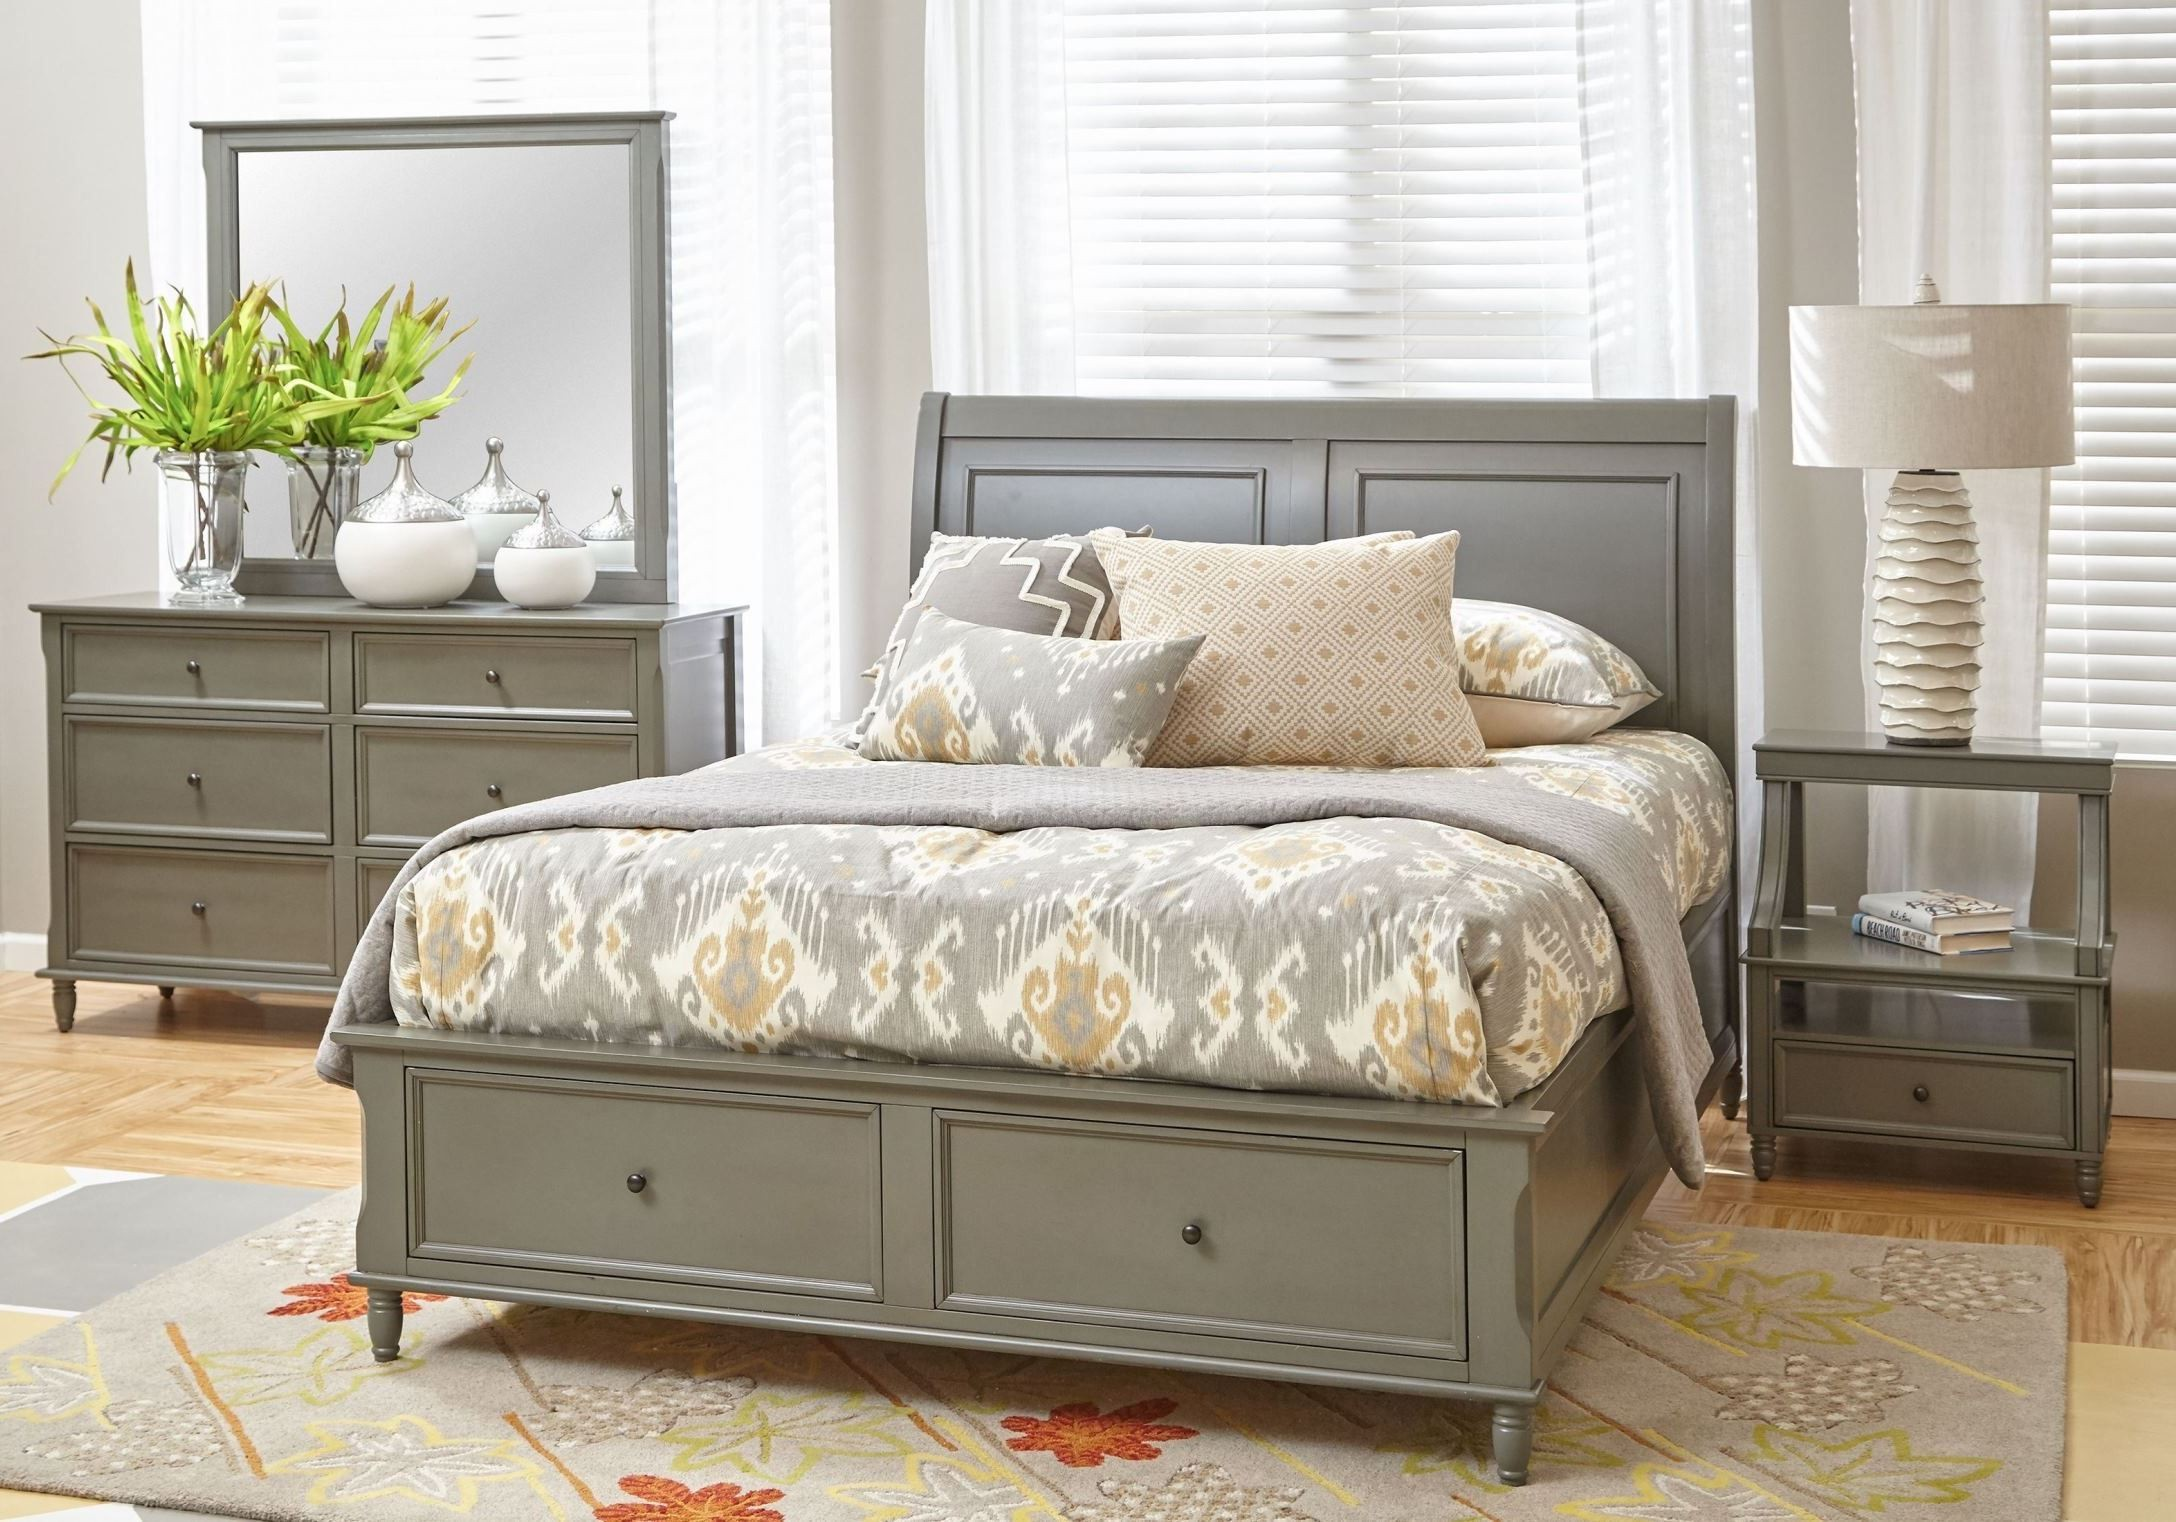 Avignon Bedroom Furniture Avignon Grey Storage Bedroom Set From Jofran  Coleman Furniture